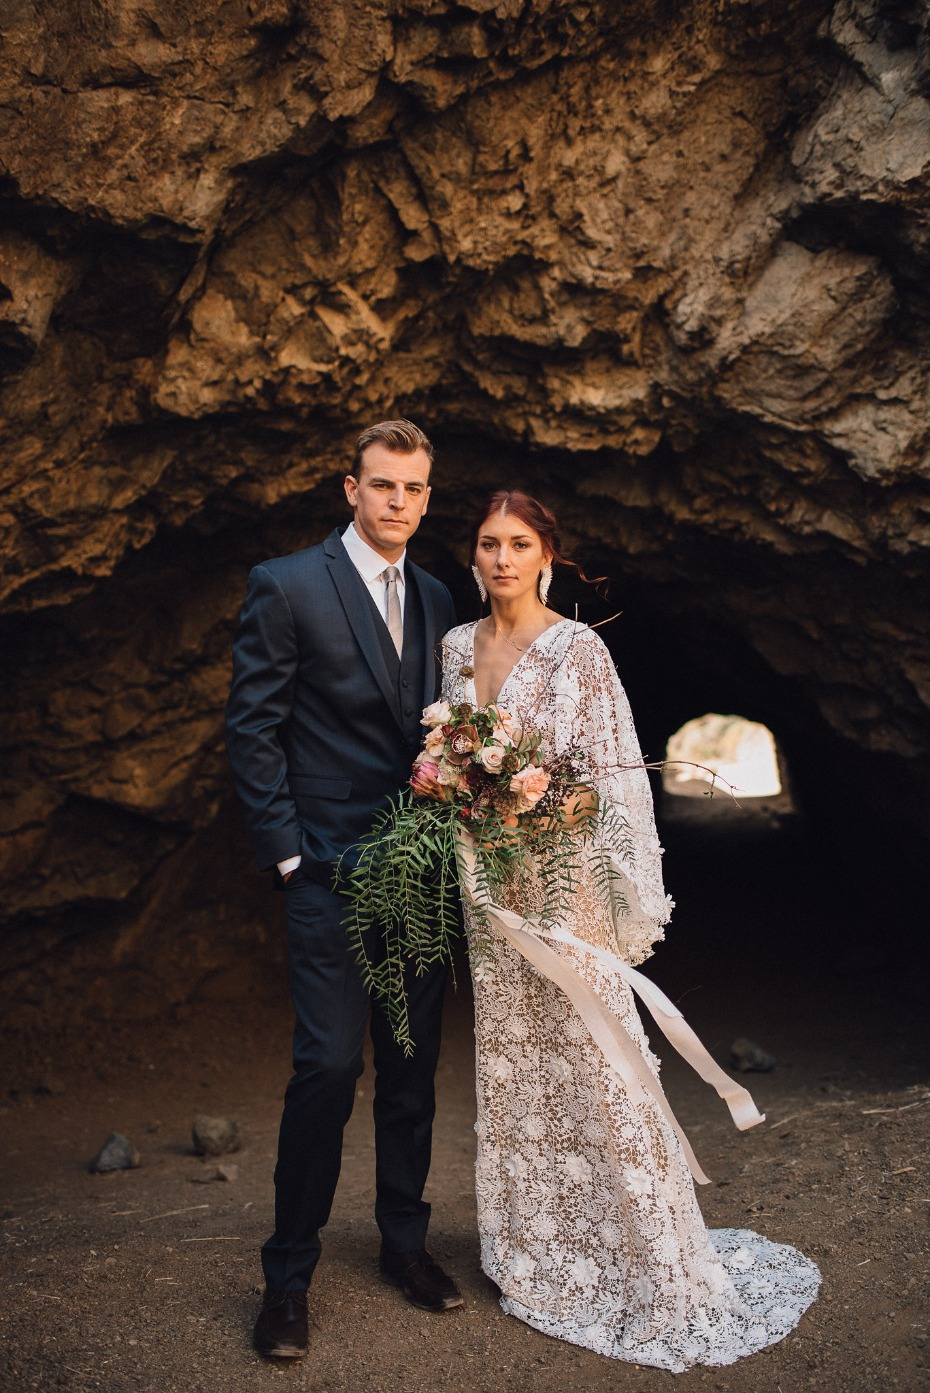 Laid-back Hollywood Bohemian shoot at The Bronson Canyon Caves